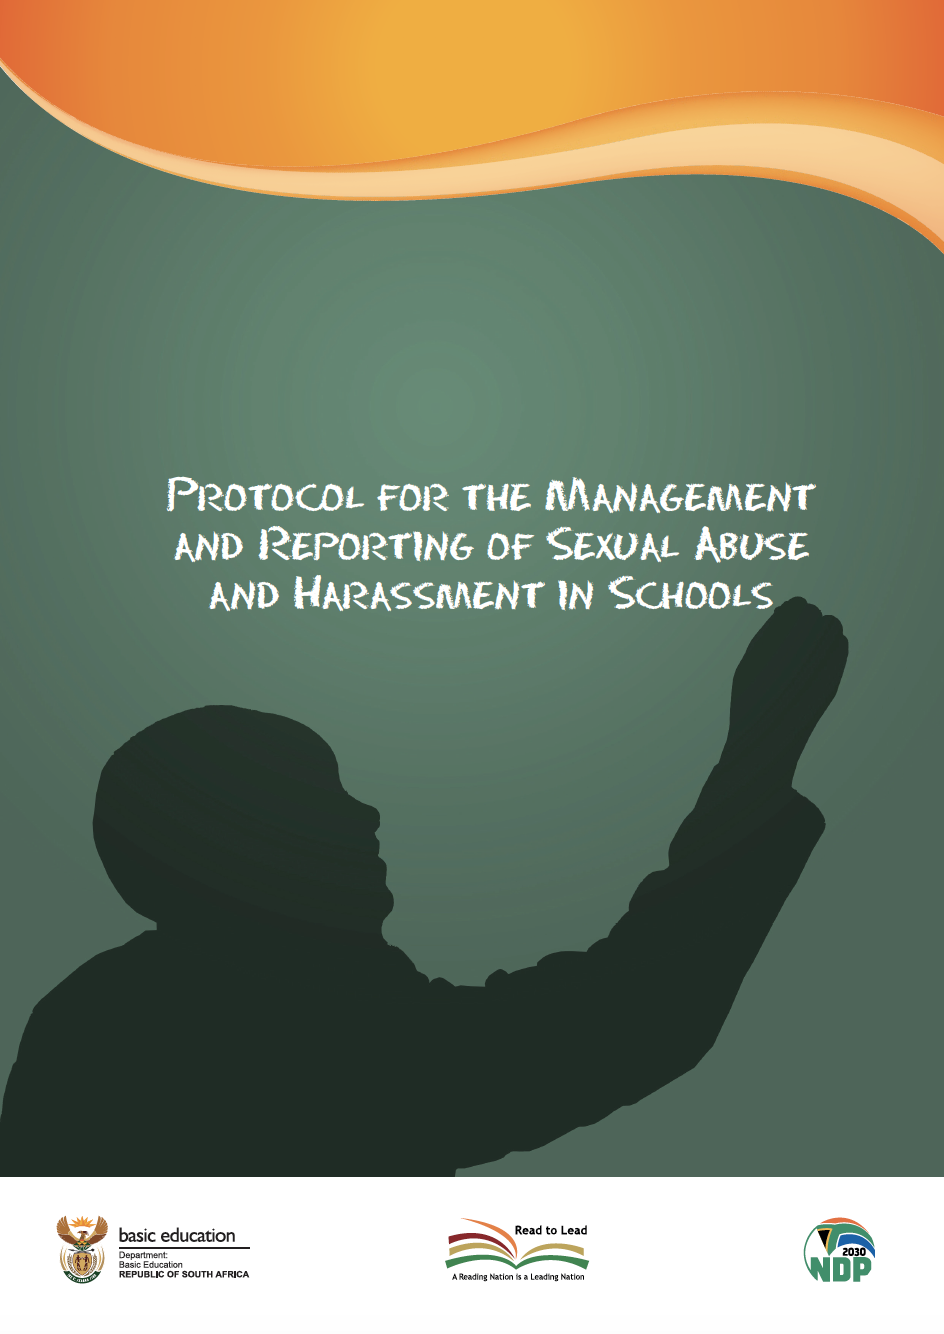 Protocol for the Management and Reporting of Sexual Abuse and Harassment in Schools